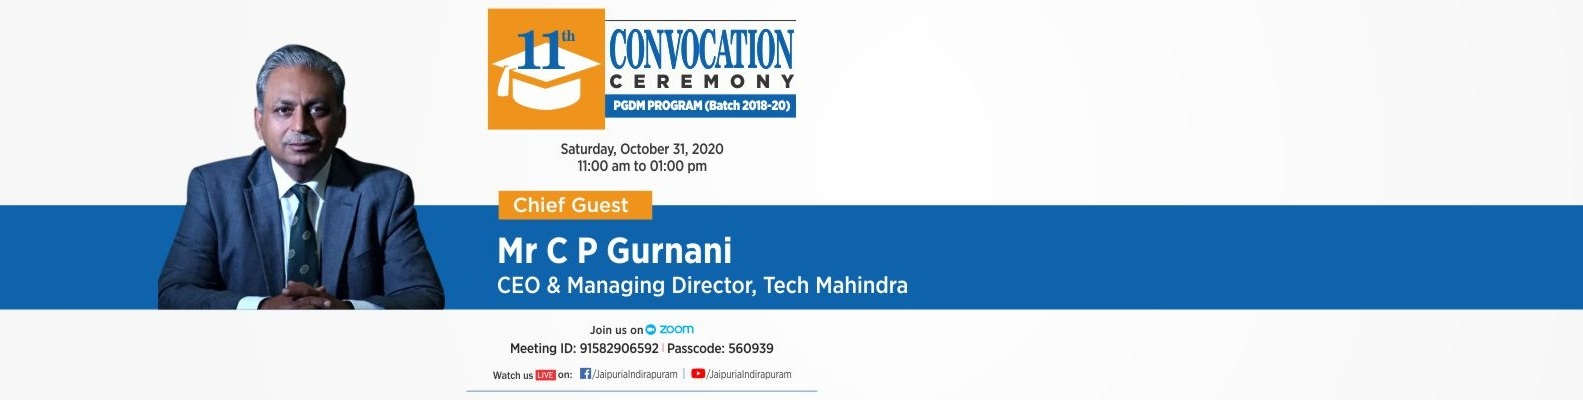 11th-Convocation-web-banner1